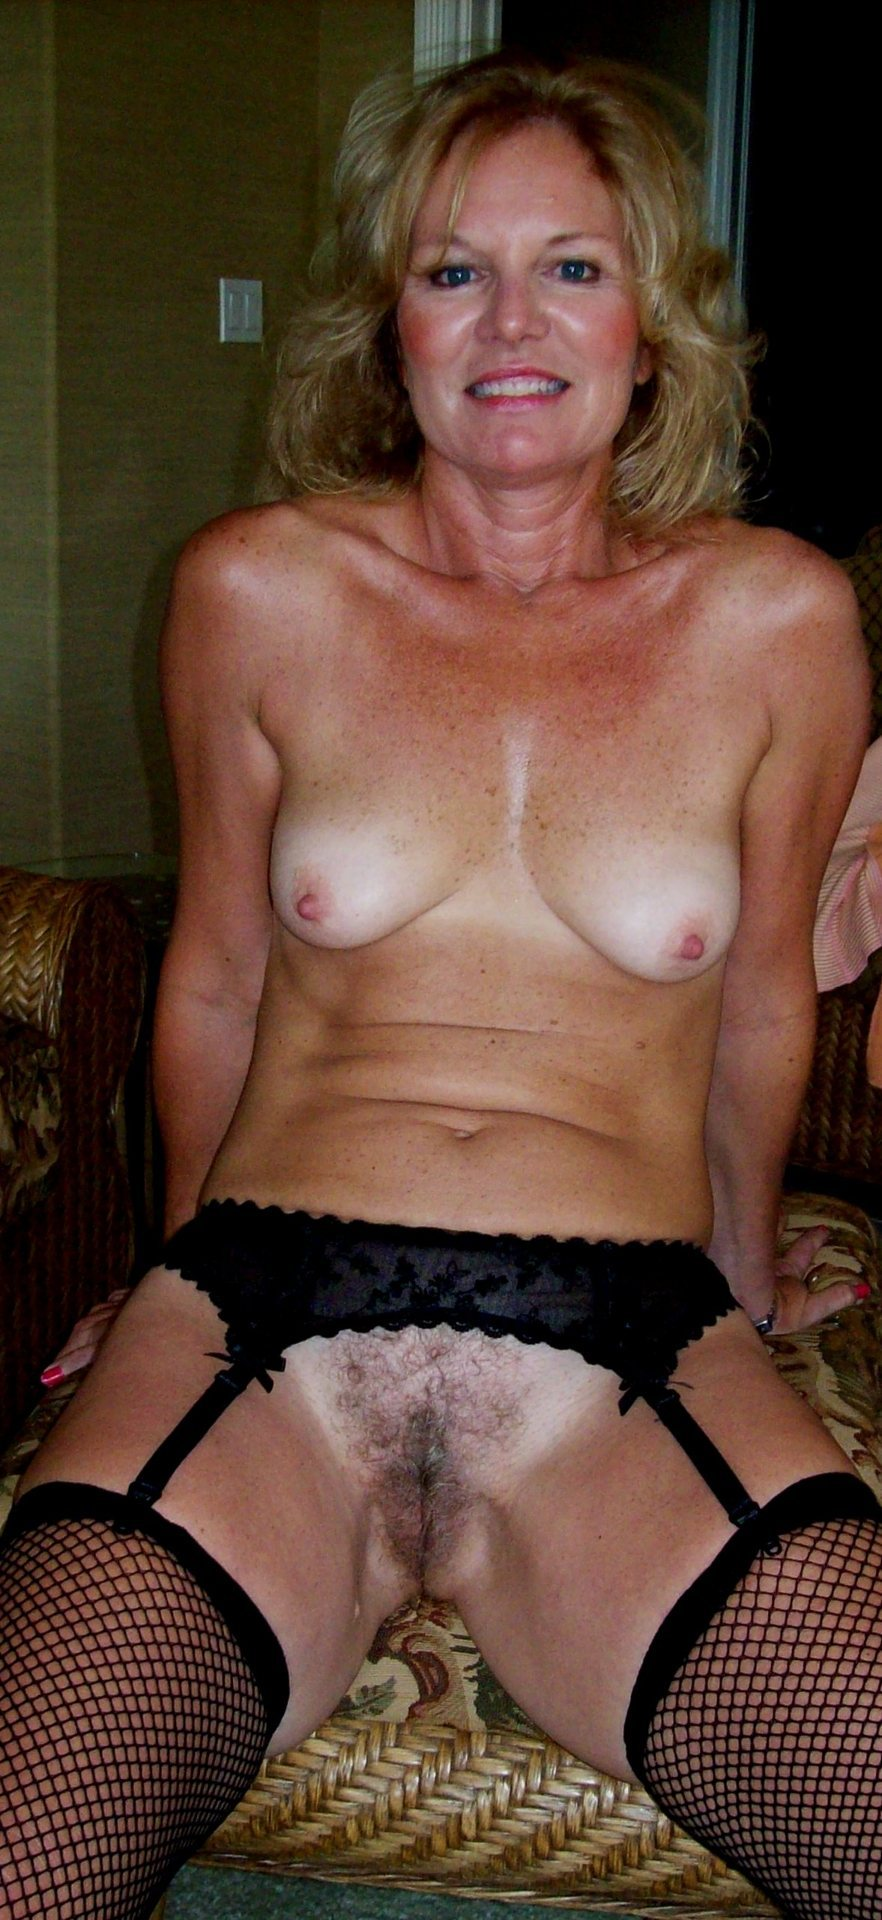 Impossible Mature hot wife tumblr are not